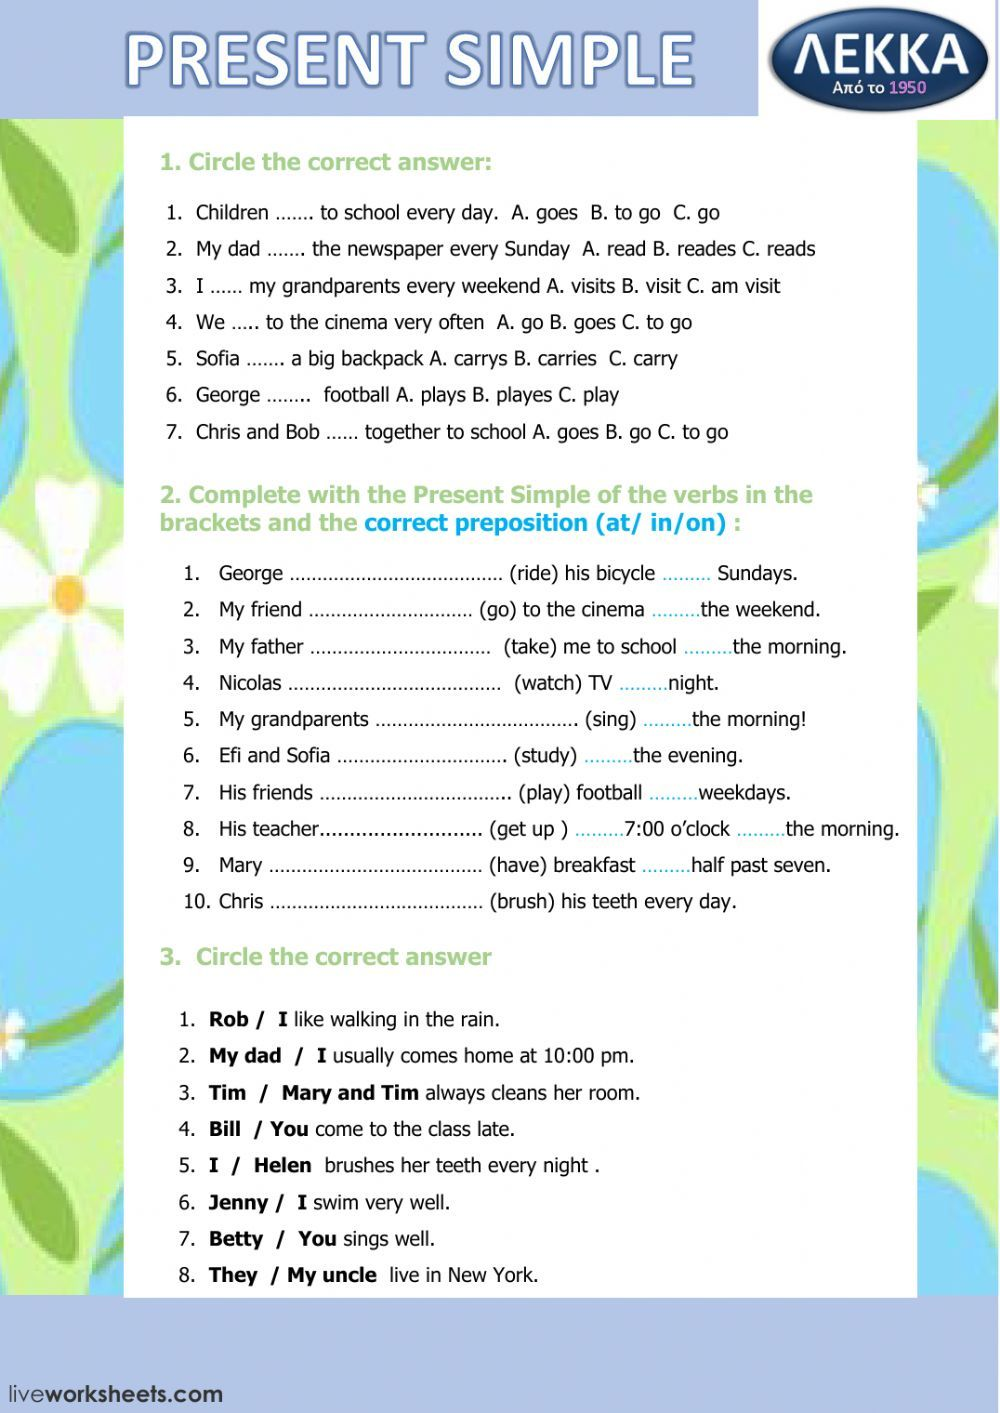 Present Simple Interactive And Downloadable Worksheet You Can Do The Exercis English Worksheets For Kids Teaching English Grammar English As A Second Language